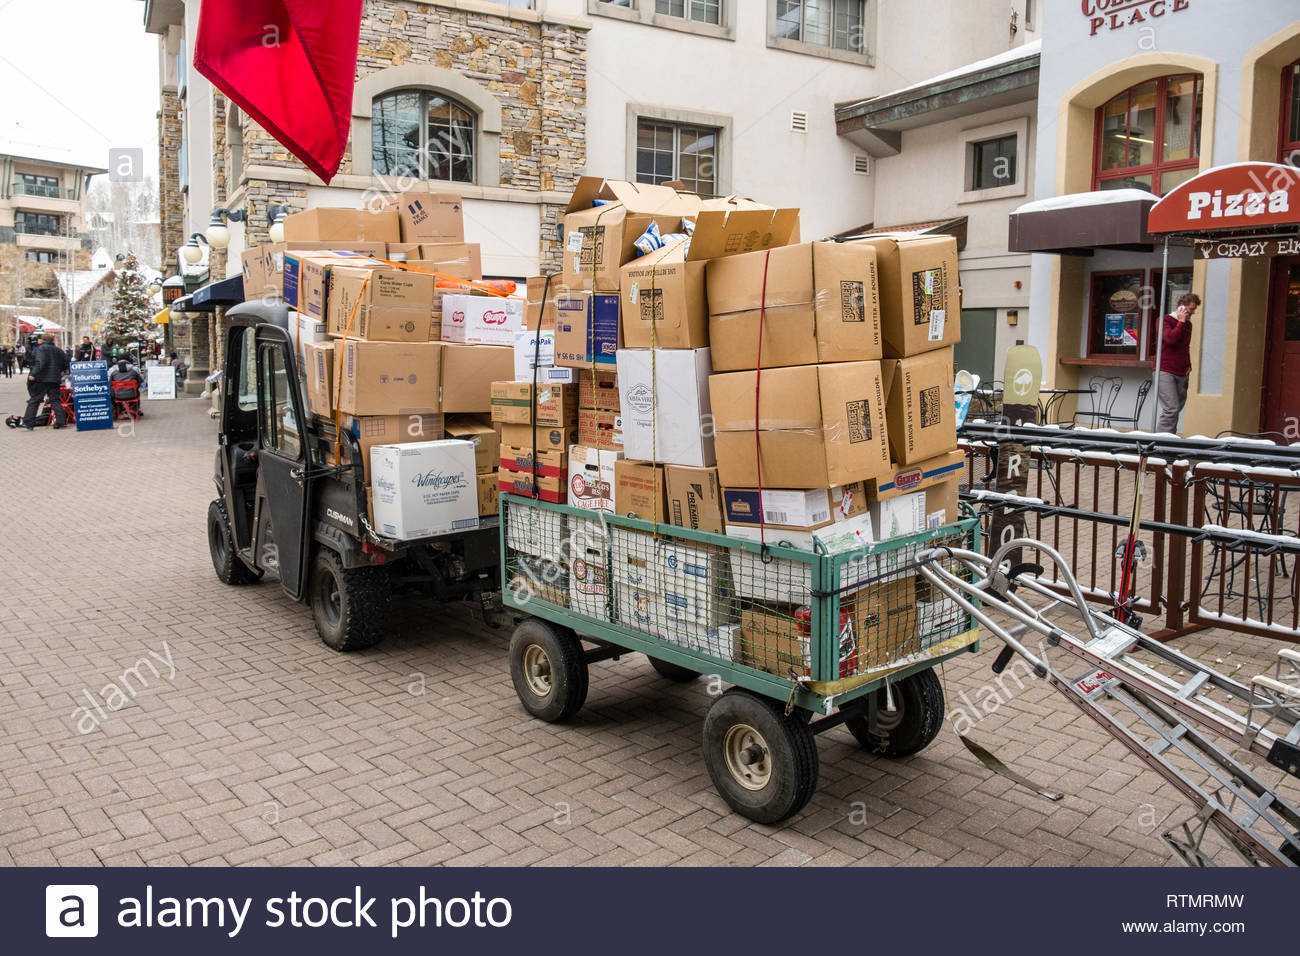 Trailer stacked high with various cardboard boxes behind a